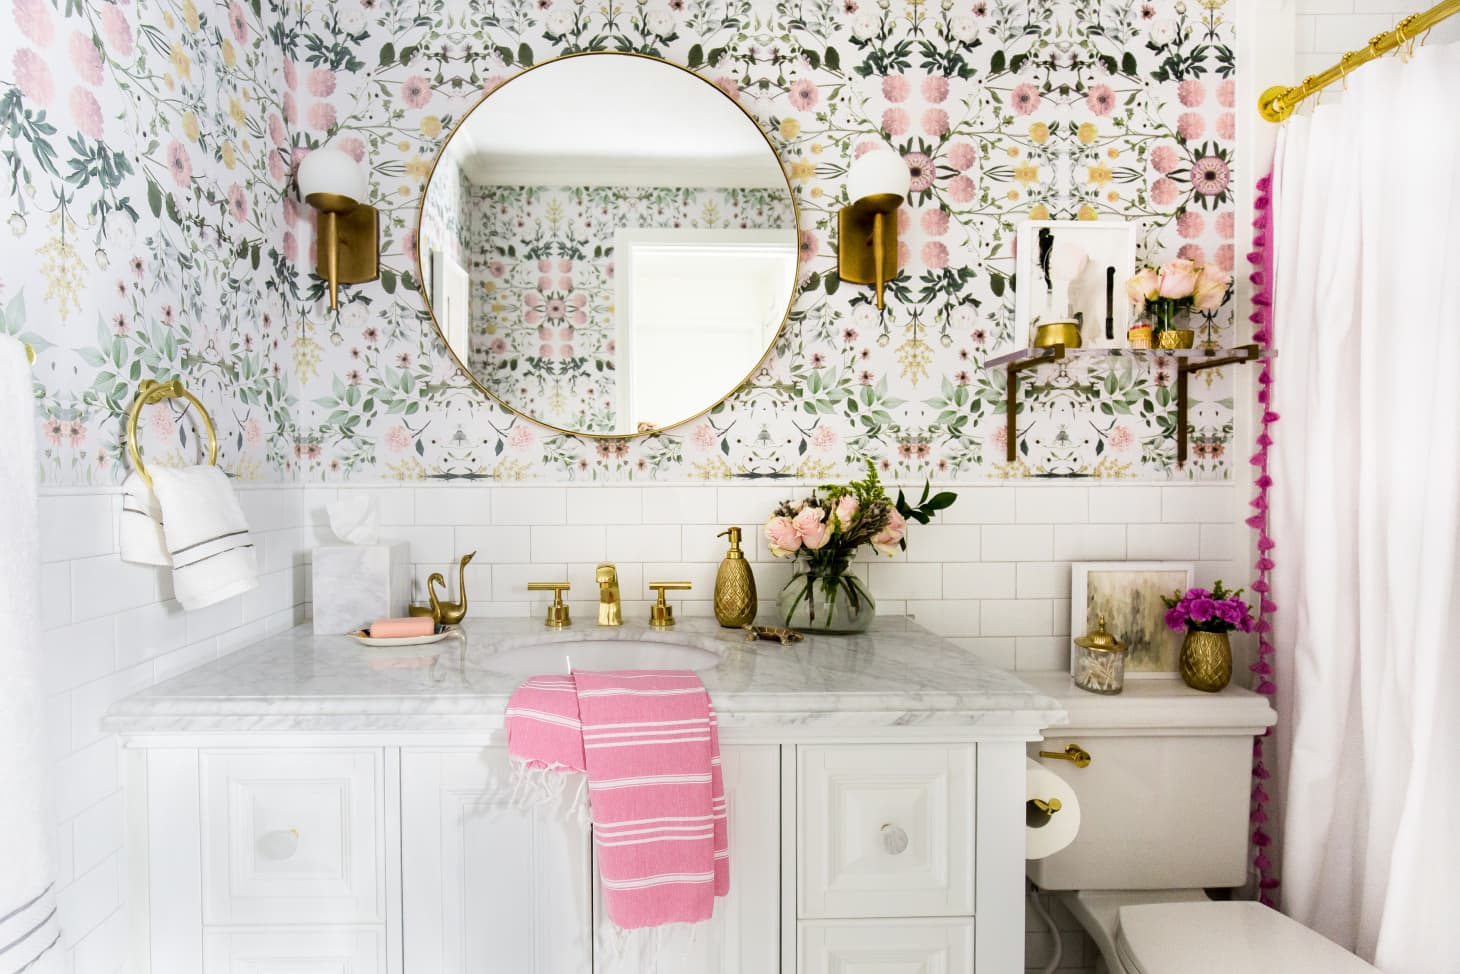 Before And After A Grey To Glam Bathroom Makeover